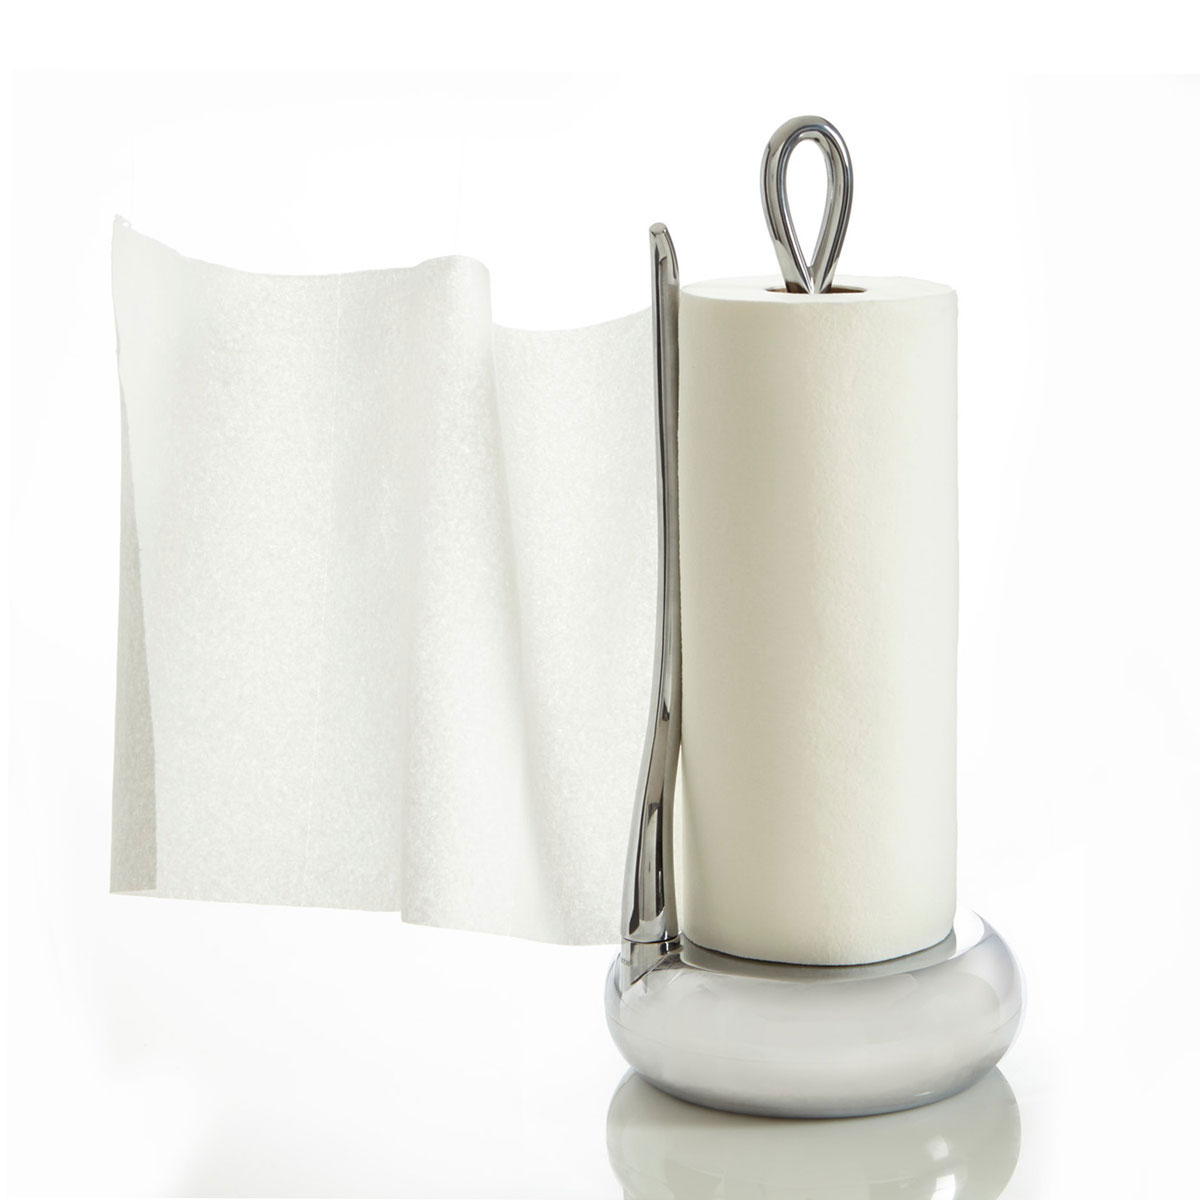 Nambe Metal Gourmet Paper Towel Holder